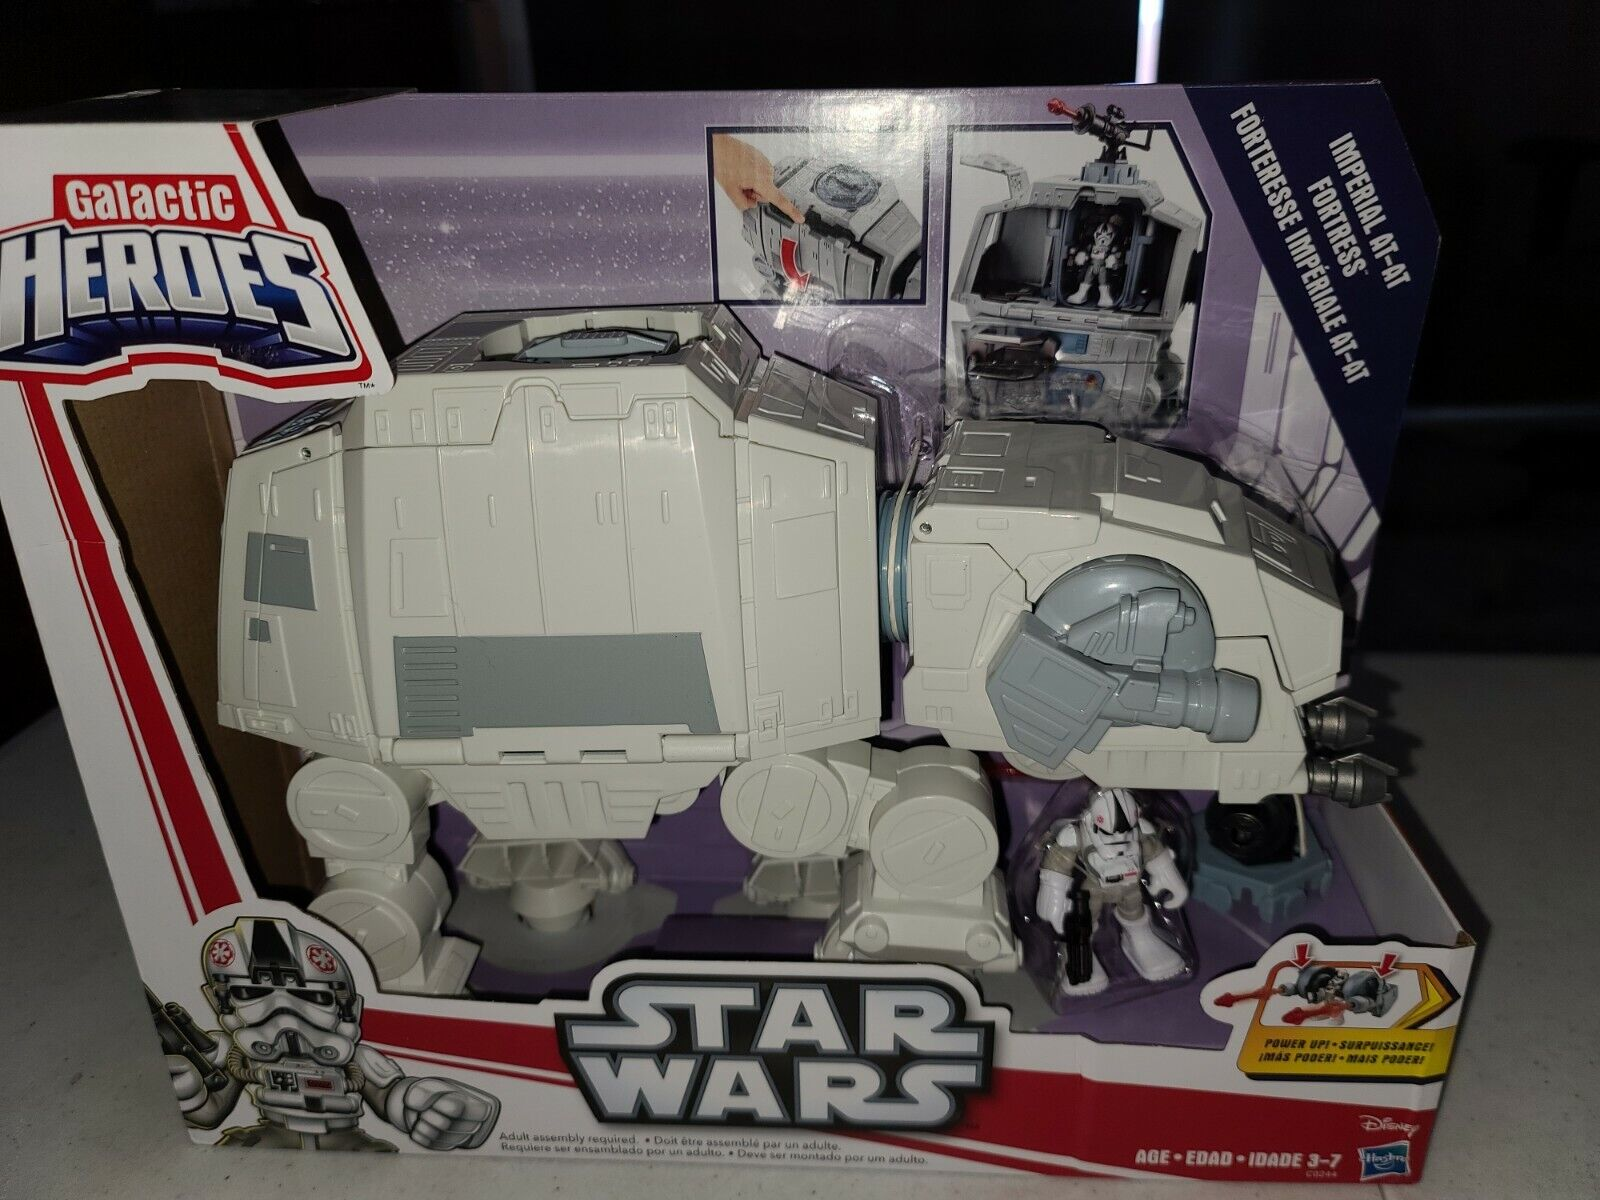 Star Wars Galactic Heroes Imperial AT-AT Fortress Playset NE